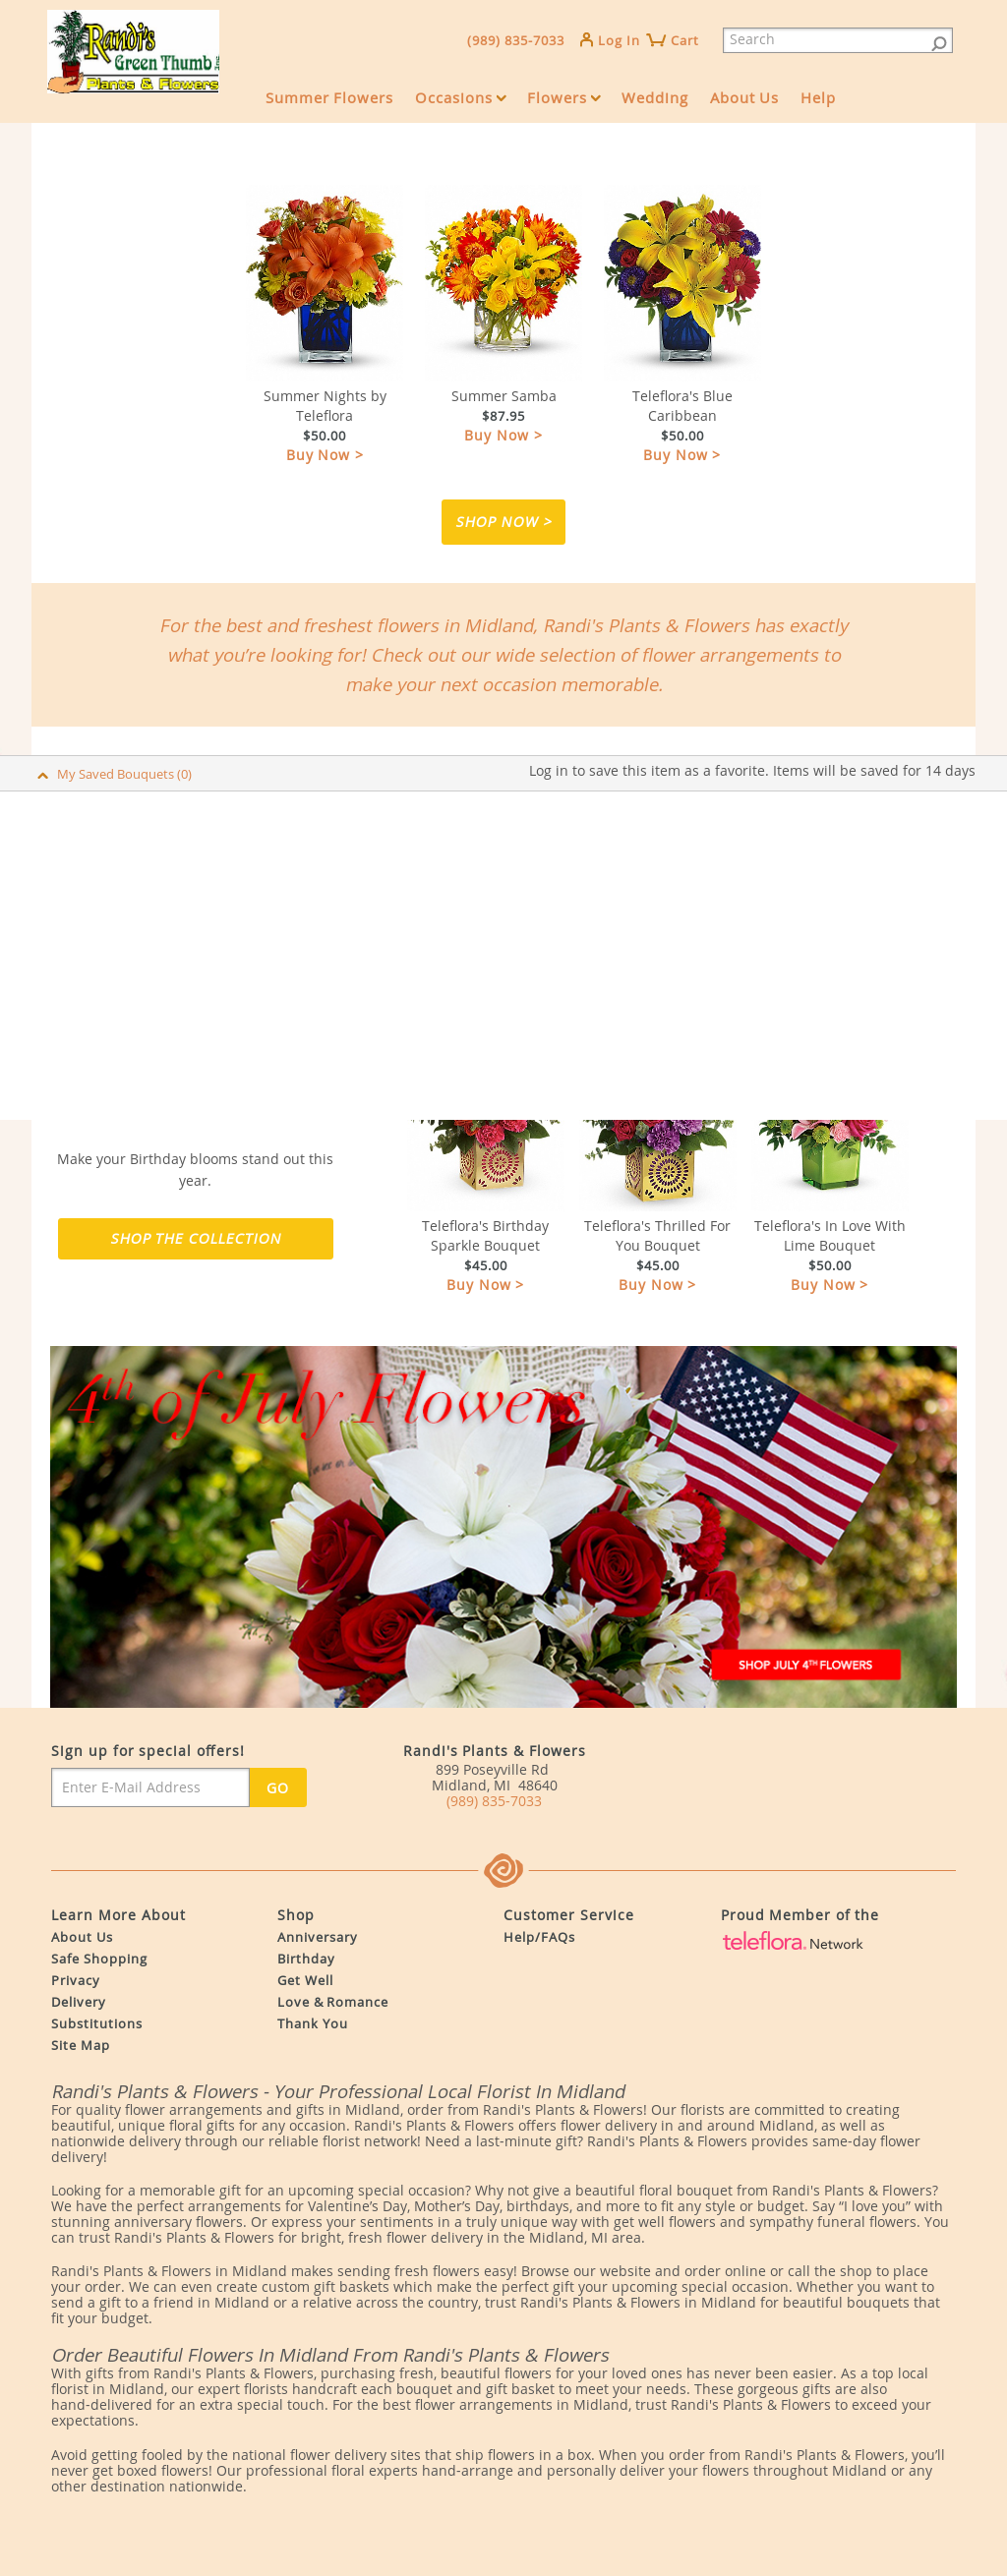 Randi's Plants & Flowers Competitors, Revenue and Employees